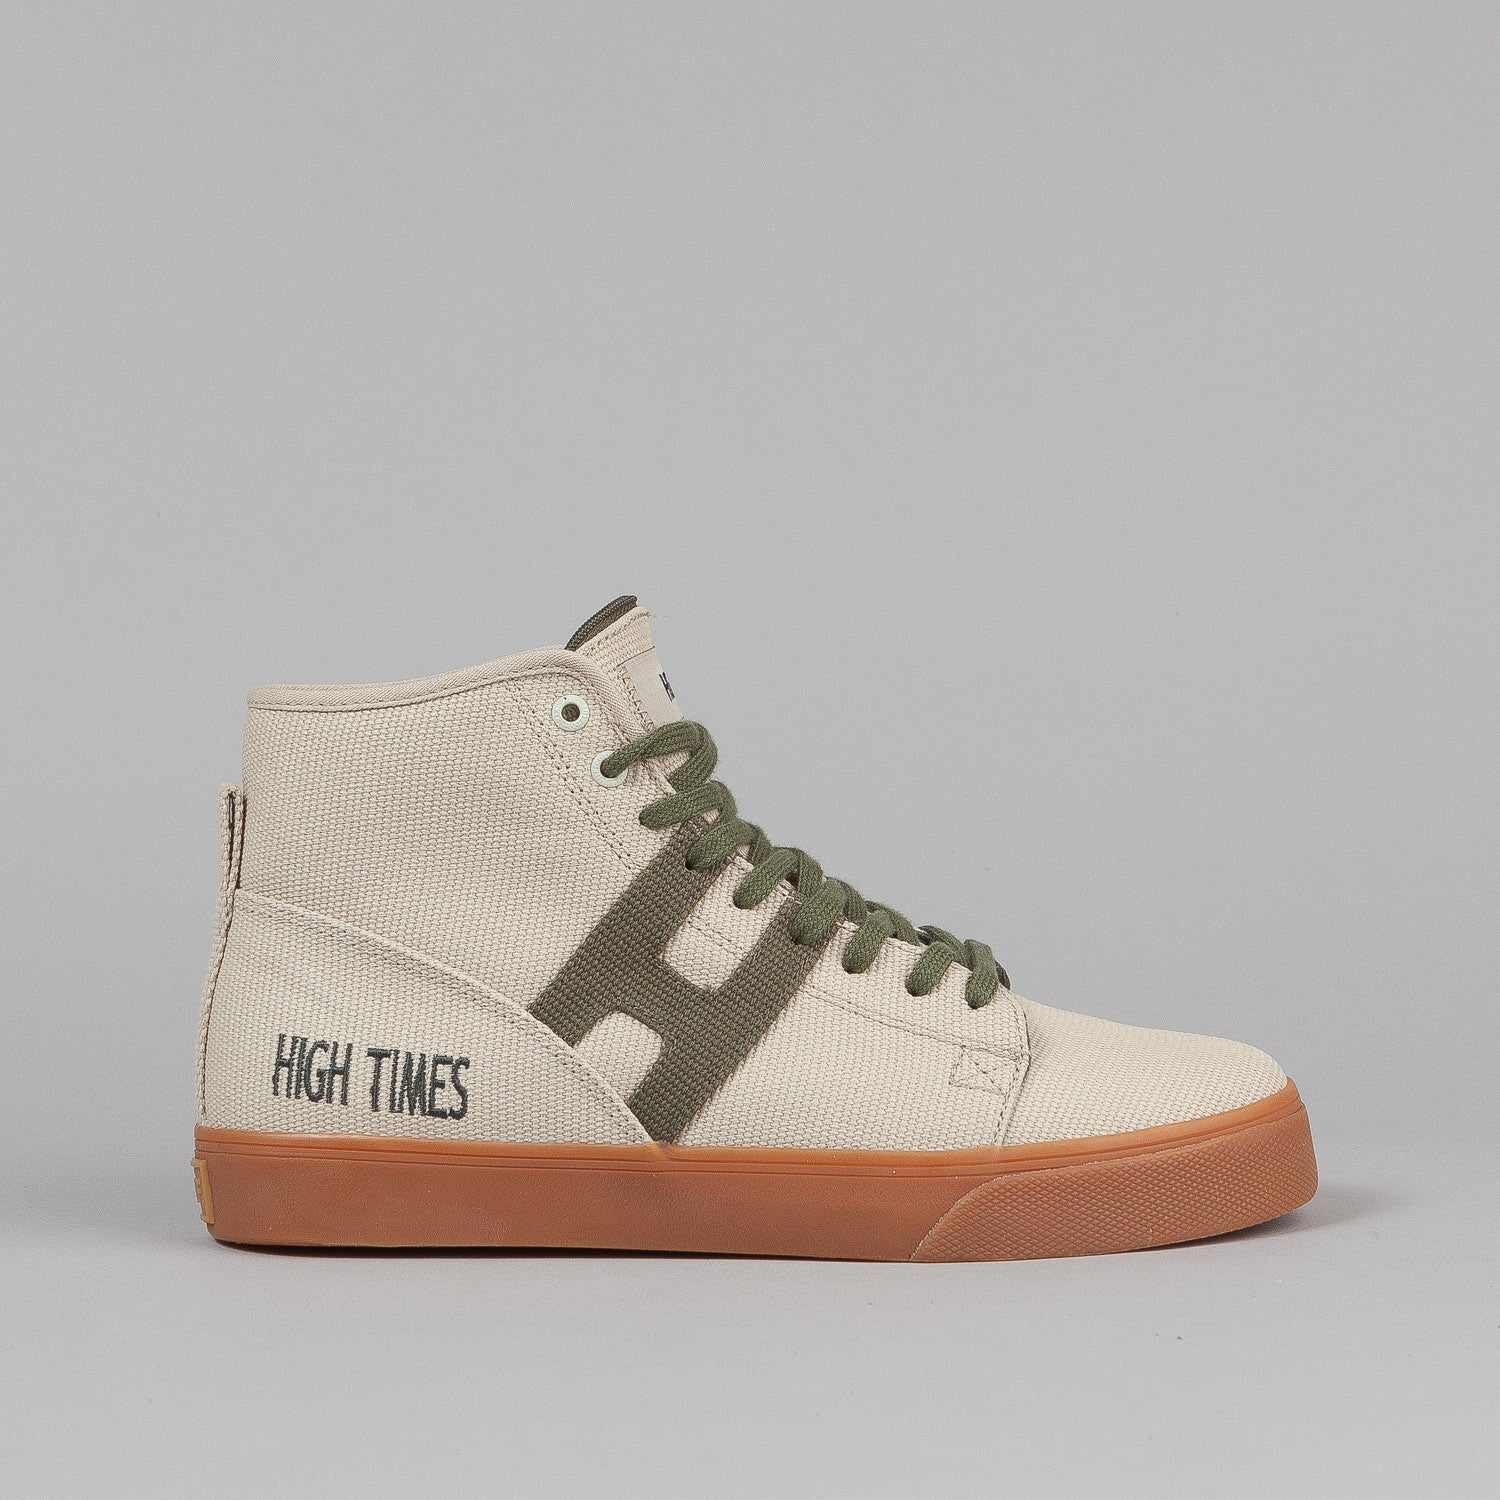 Huf X High Times Hupper Shoes